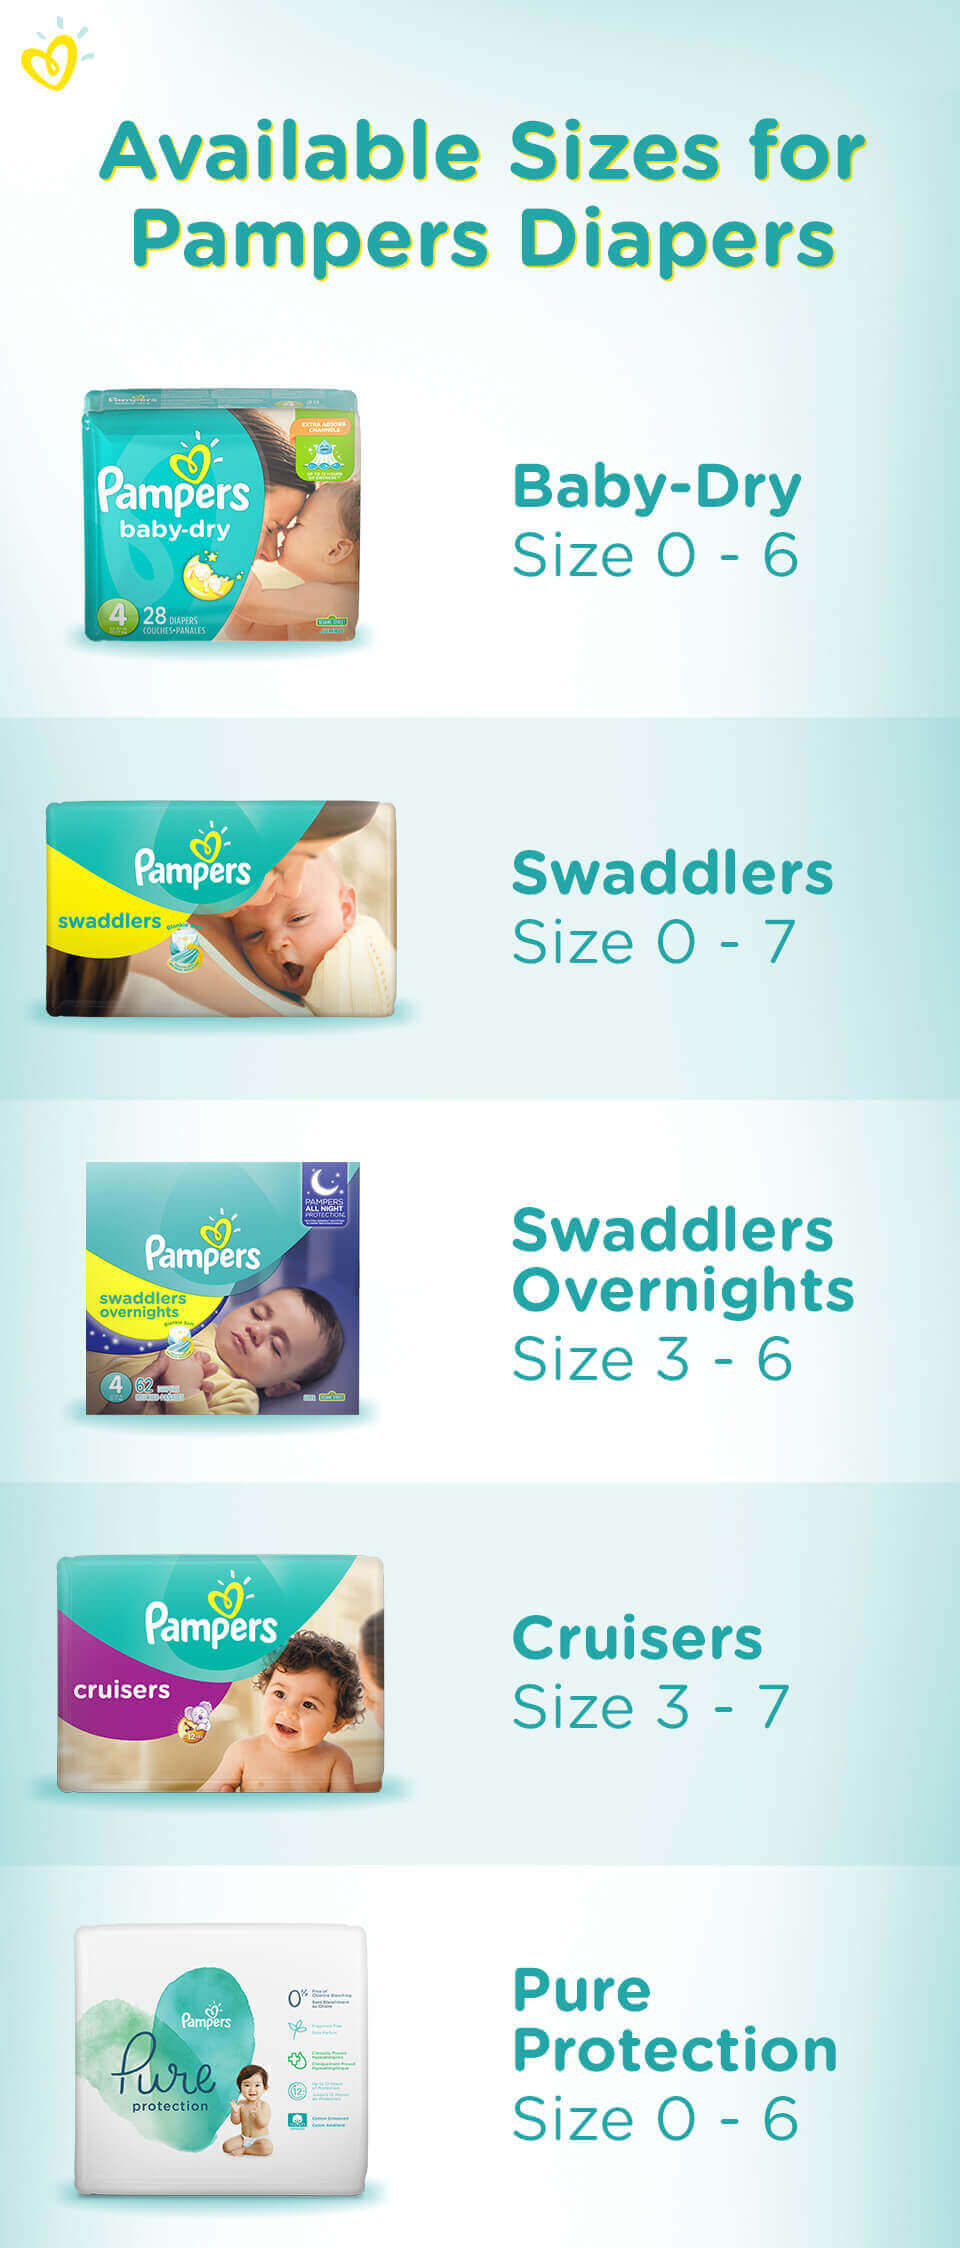 Pampers Sizing Chart : pampers, sizing, chart, Diaper, Weight, Chart, Guide, Pampers